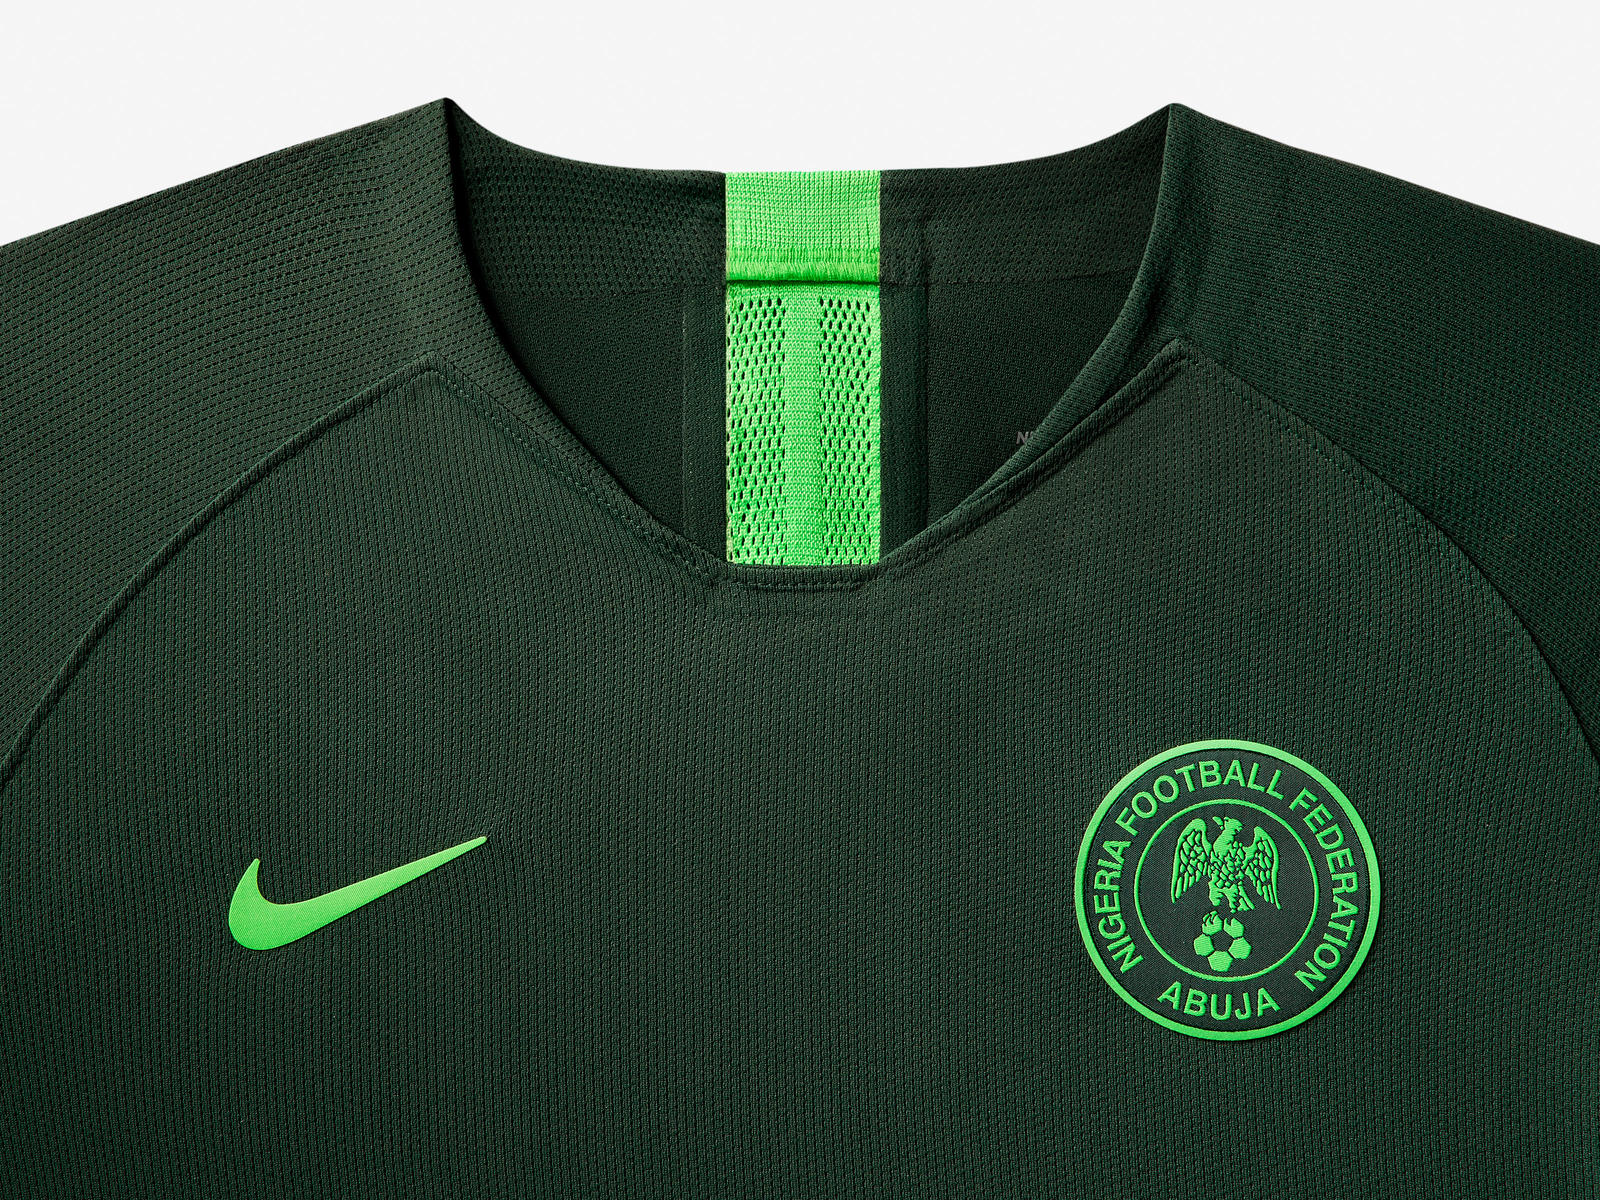 nigeria-national-team-kit-2019-laydown-001_85937.jpg